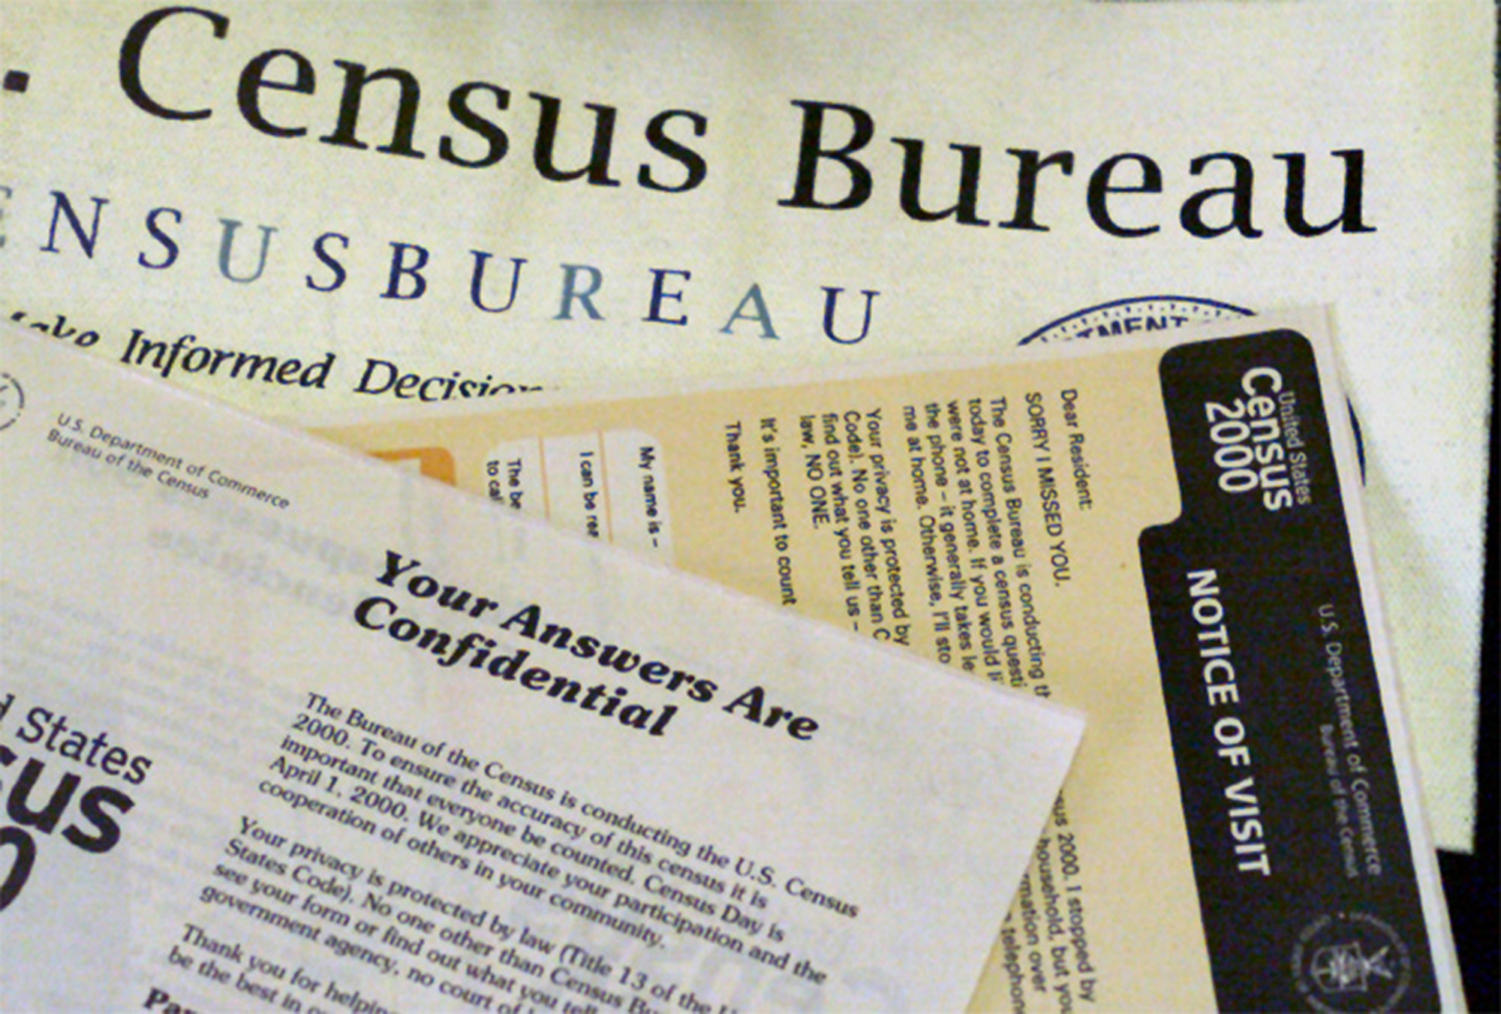 The paperwork used by census takers in 2000.